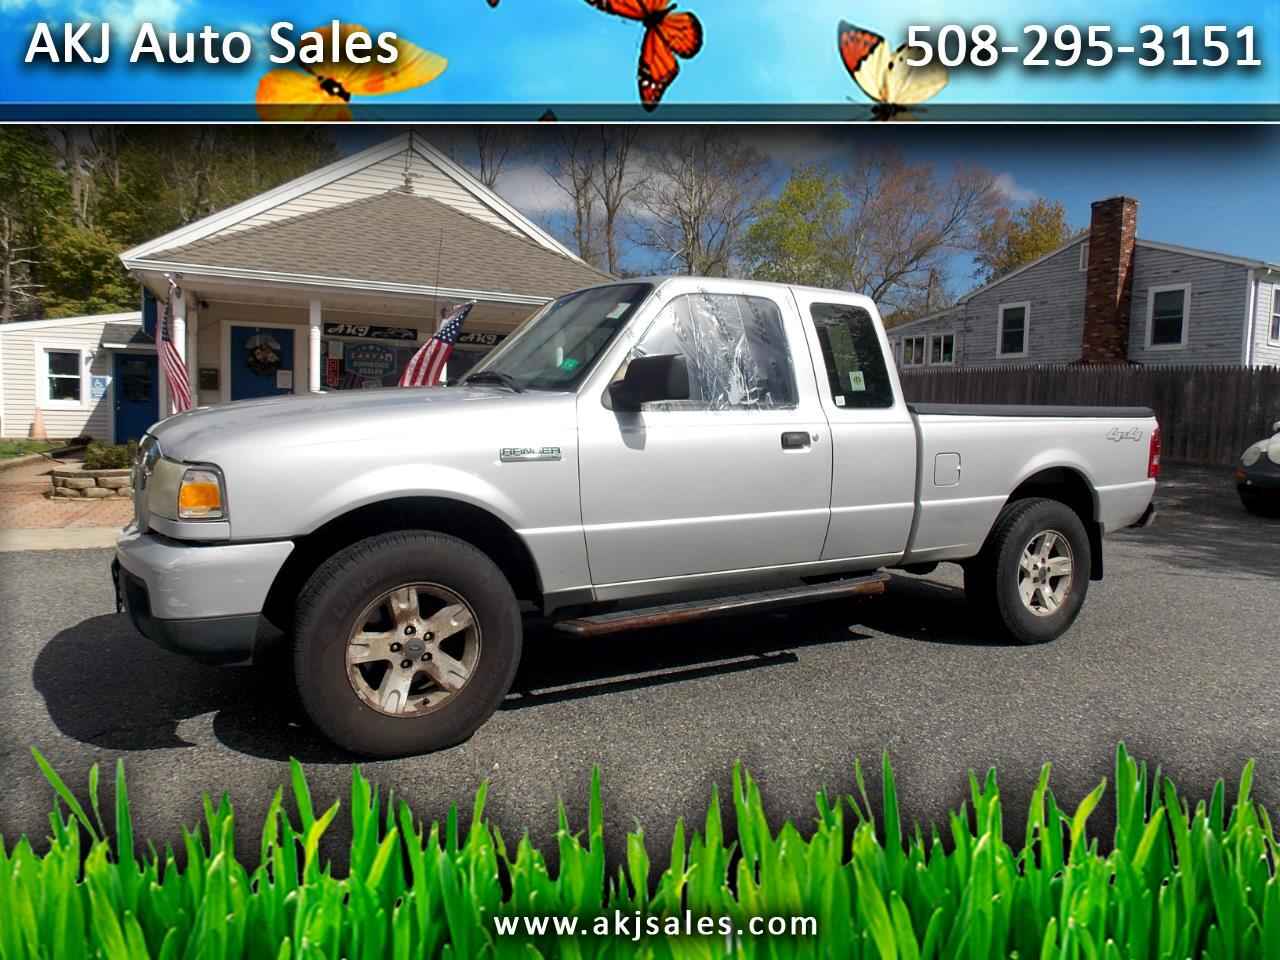 """Ford Ranger 4dr Supercab 126"""" WB FX4 Lvl II 4WD 2006"""